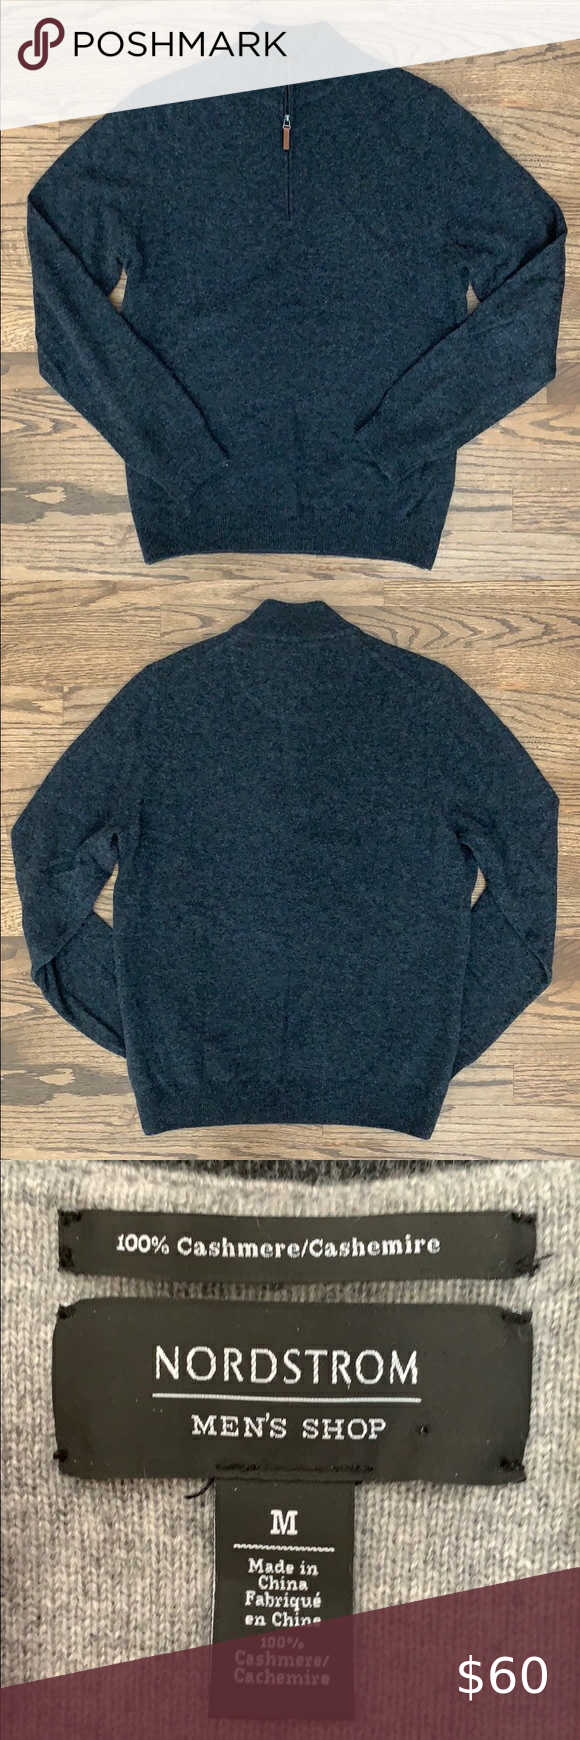 Nordstrom Men's Shop Cashmere Sweater Spotted whil